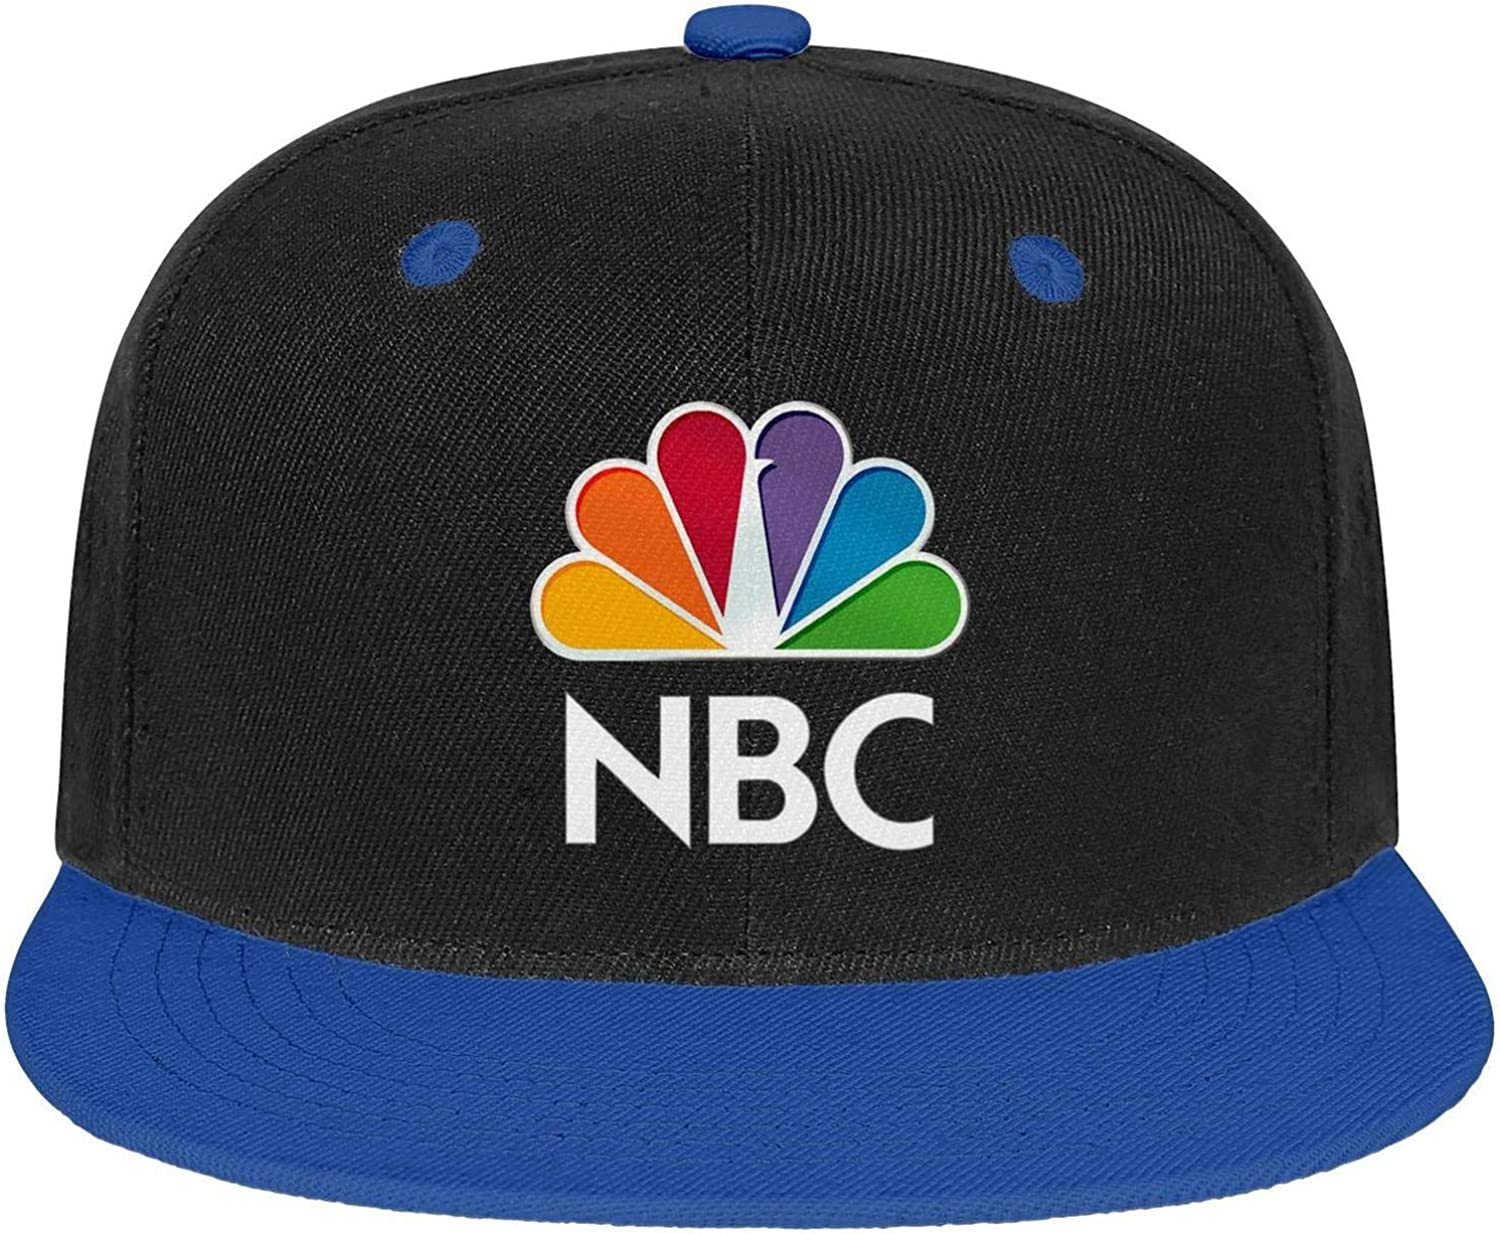 HTLYT Mag-NBC-Logo Mens Trucker Cap one Size Low Profile Dad Distressed Snapback hat